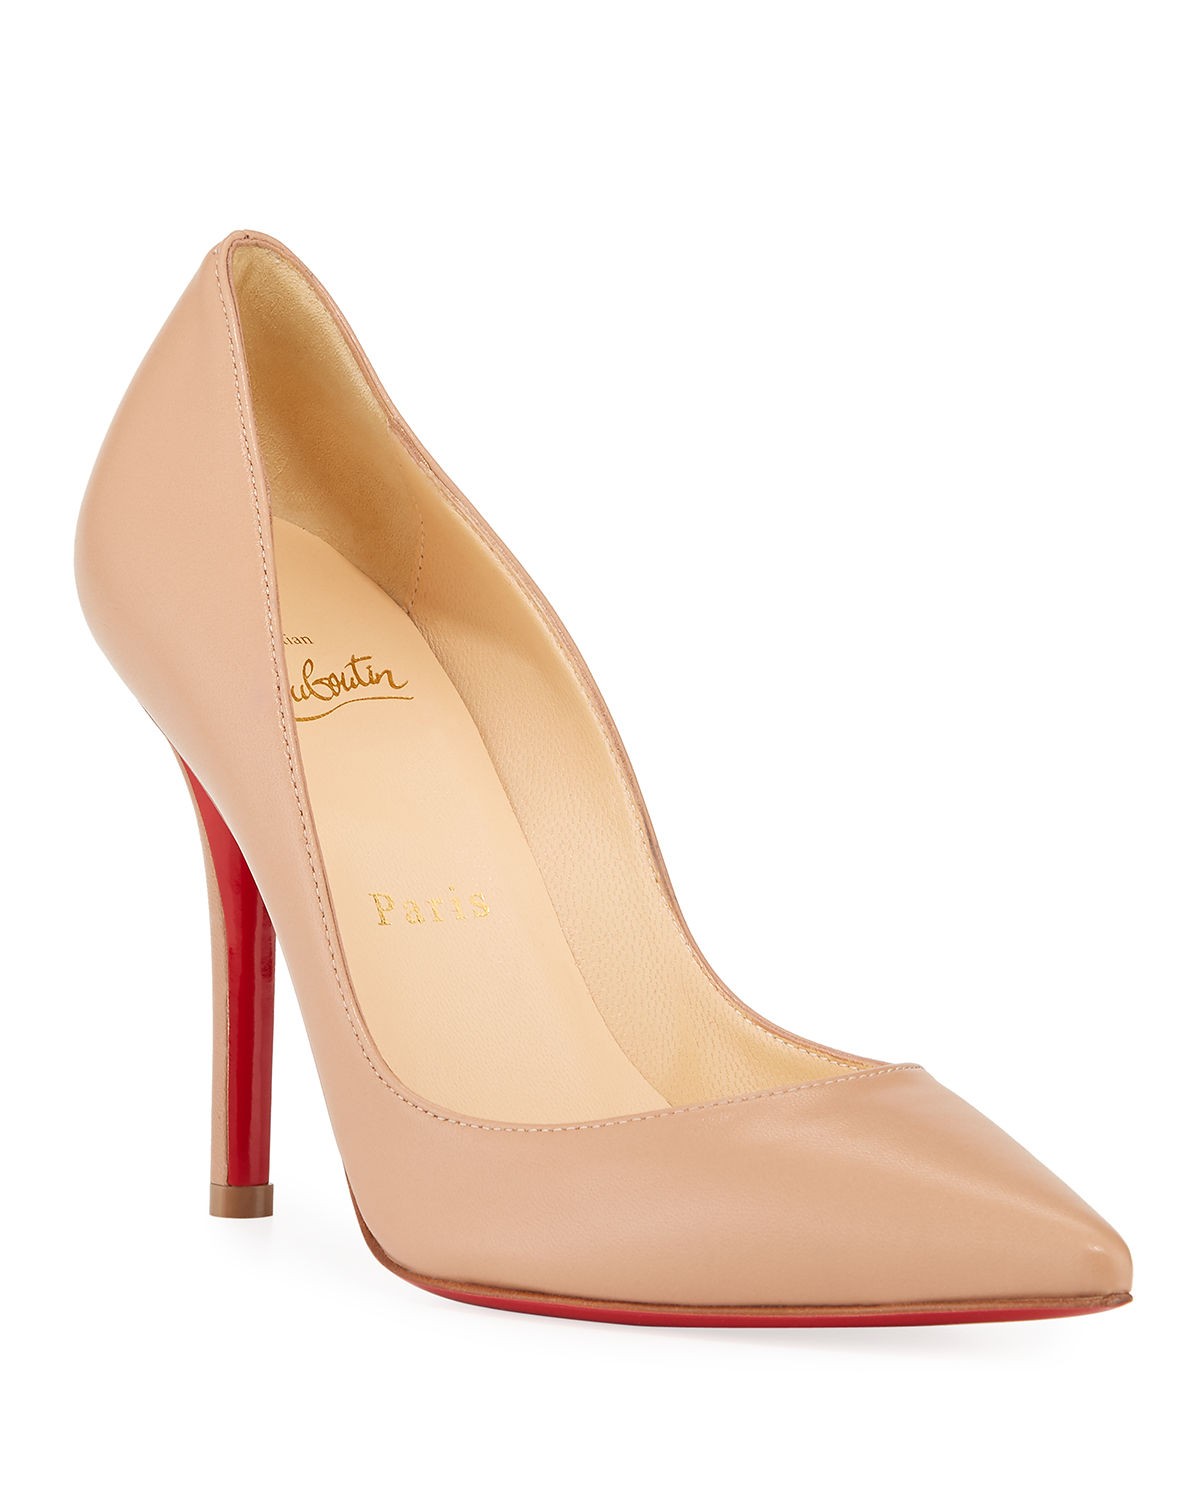 36b63ba5a533 Christian Louboutin Apostrophy Pointed Red-Sole Pump